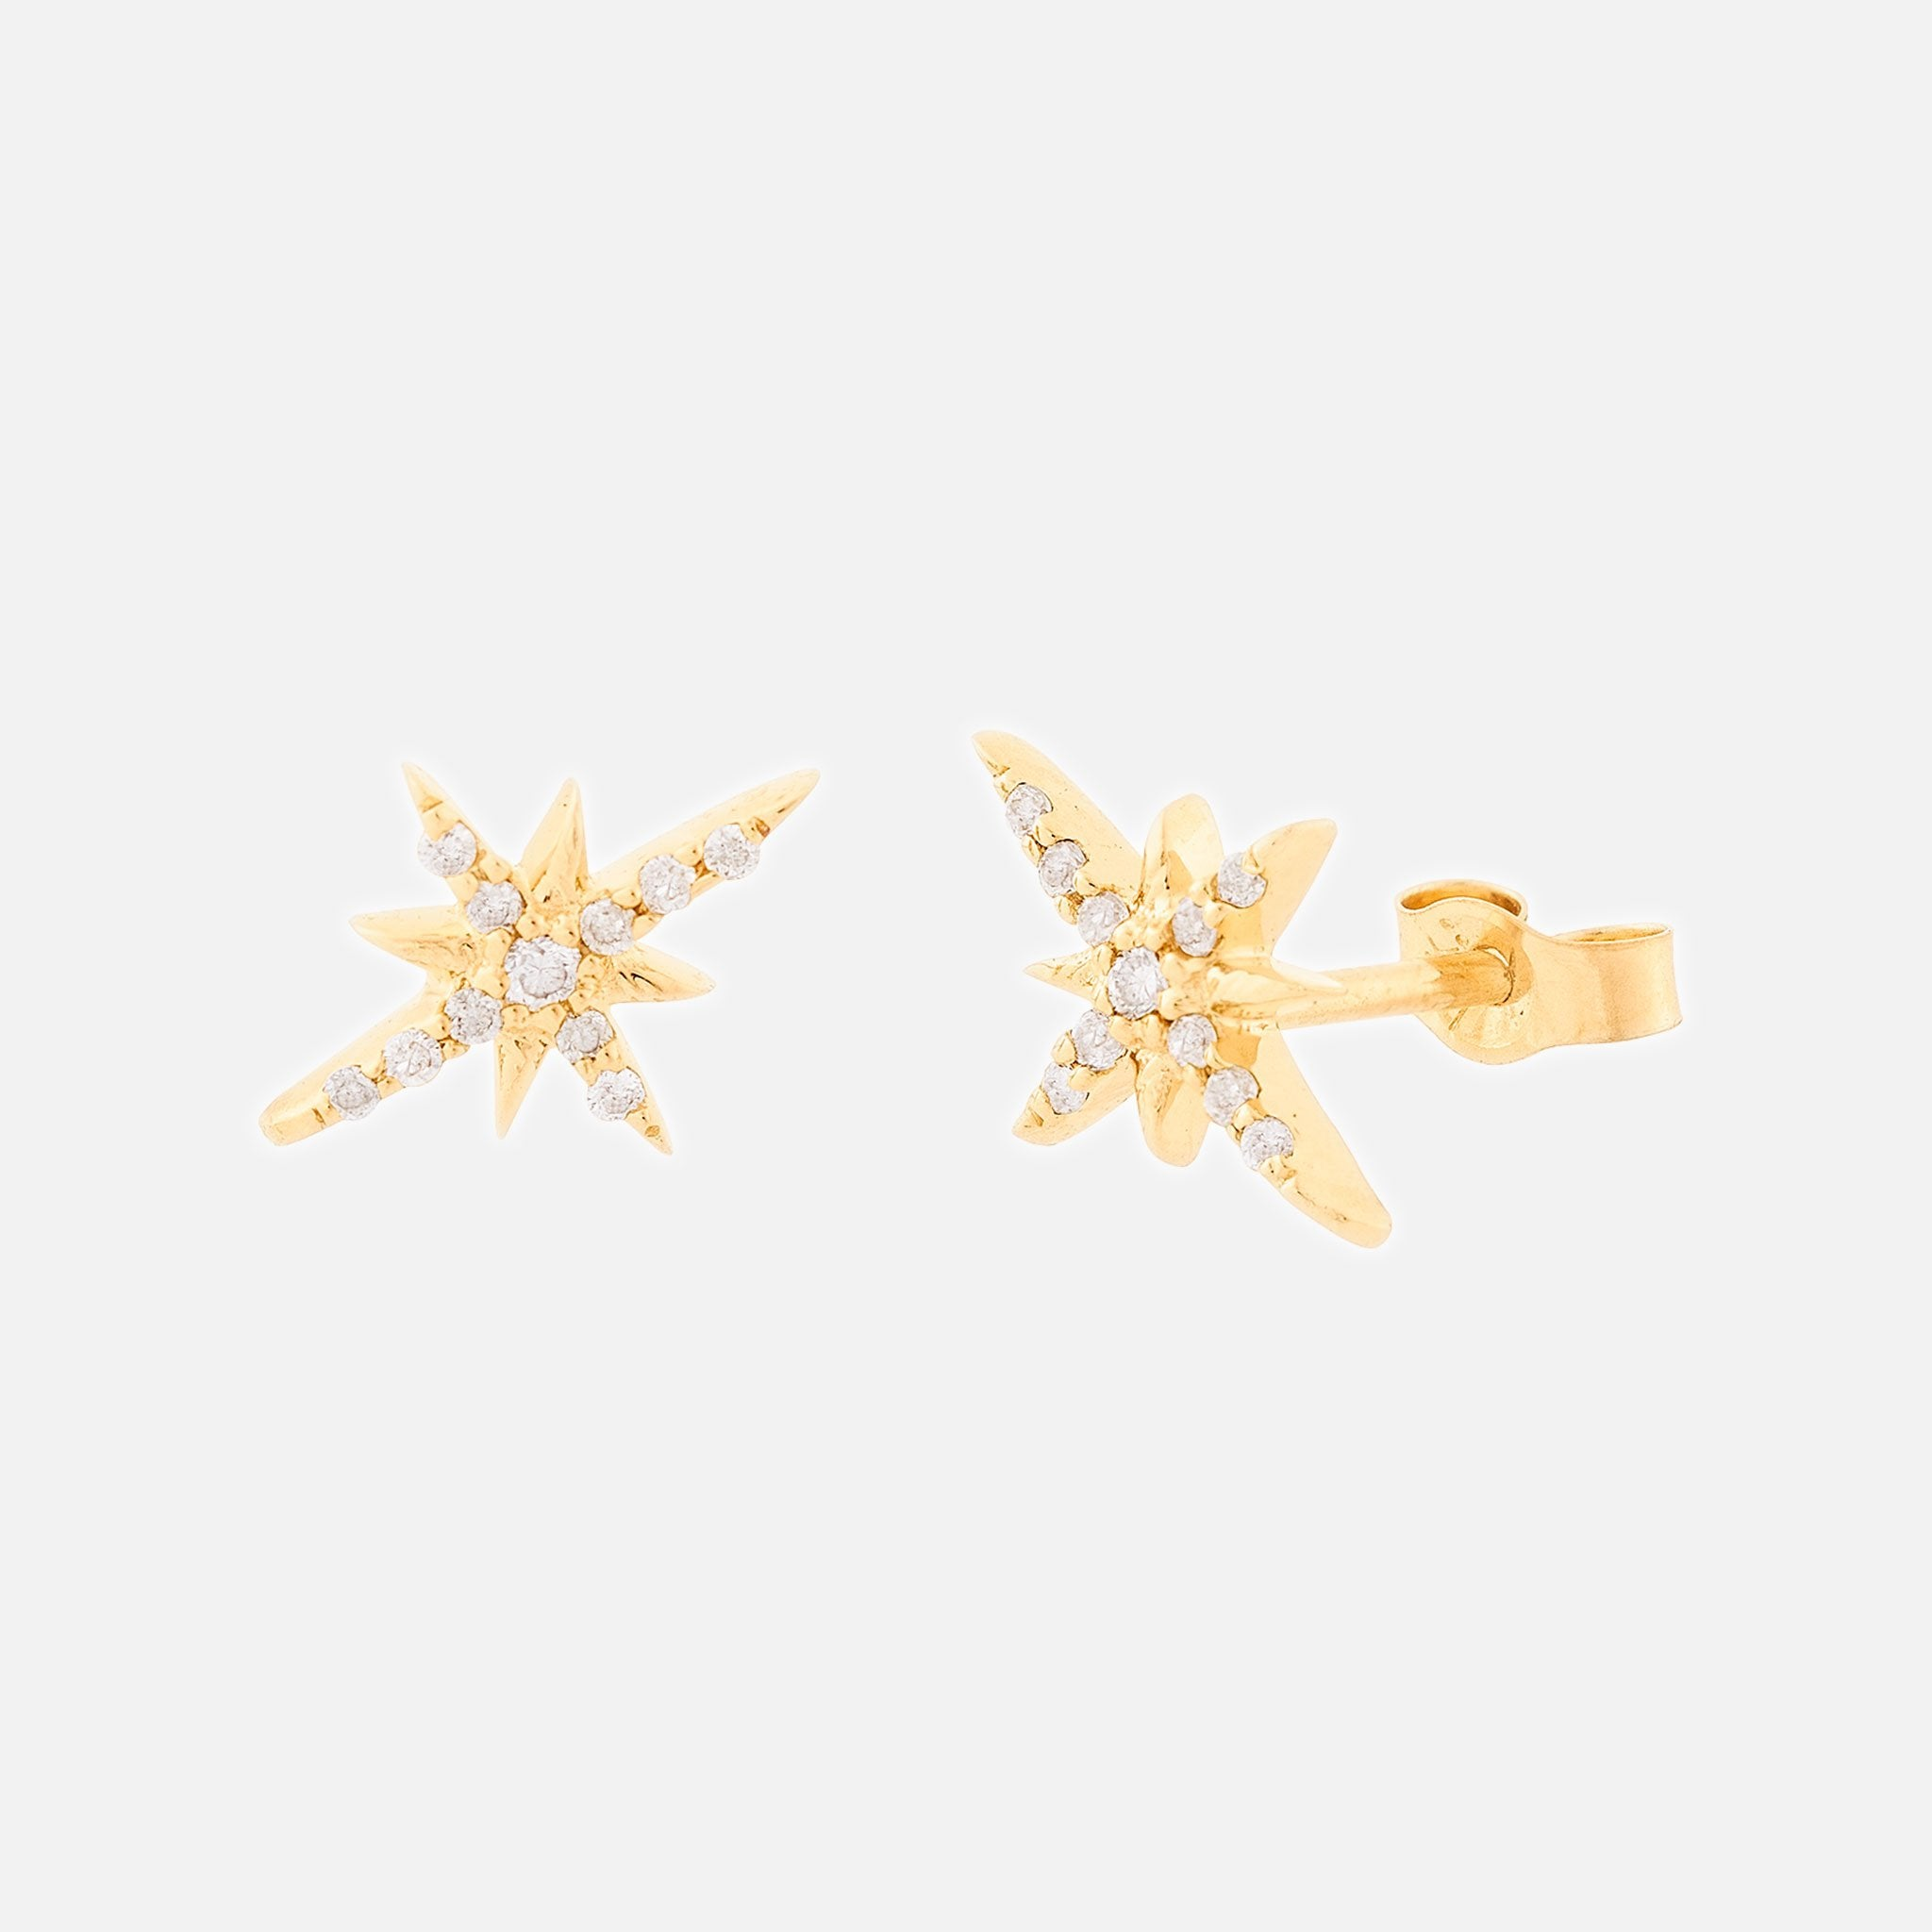 North Star Yellow Gold Earrings